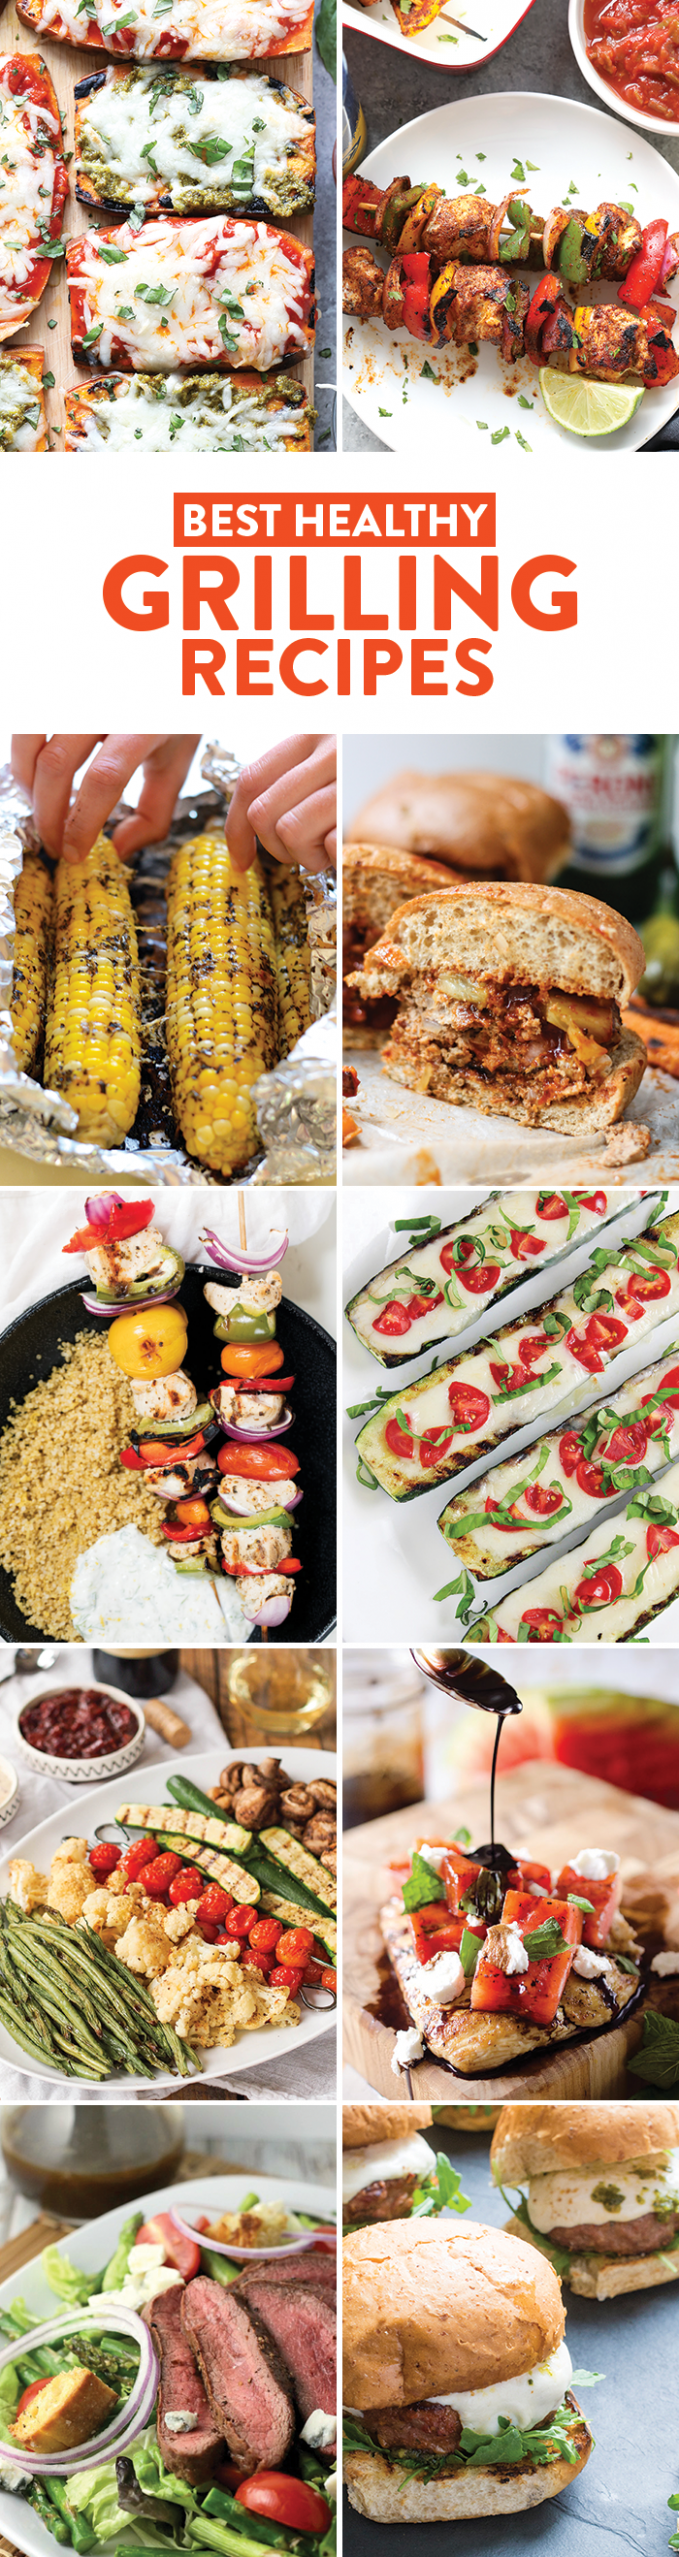 Easy on the Grill Recipes that are Healthy and Delicious! | Fit ..